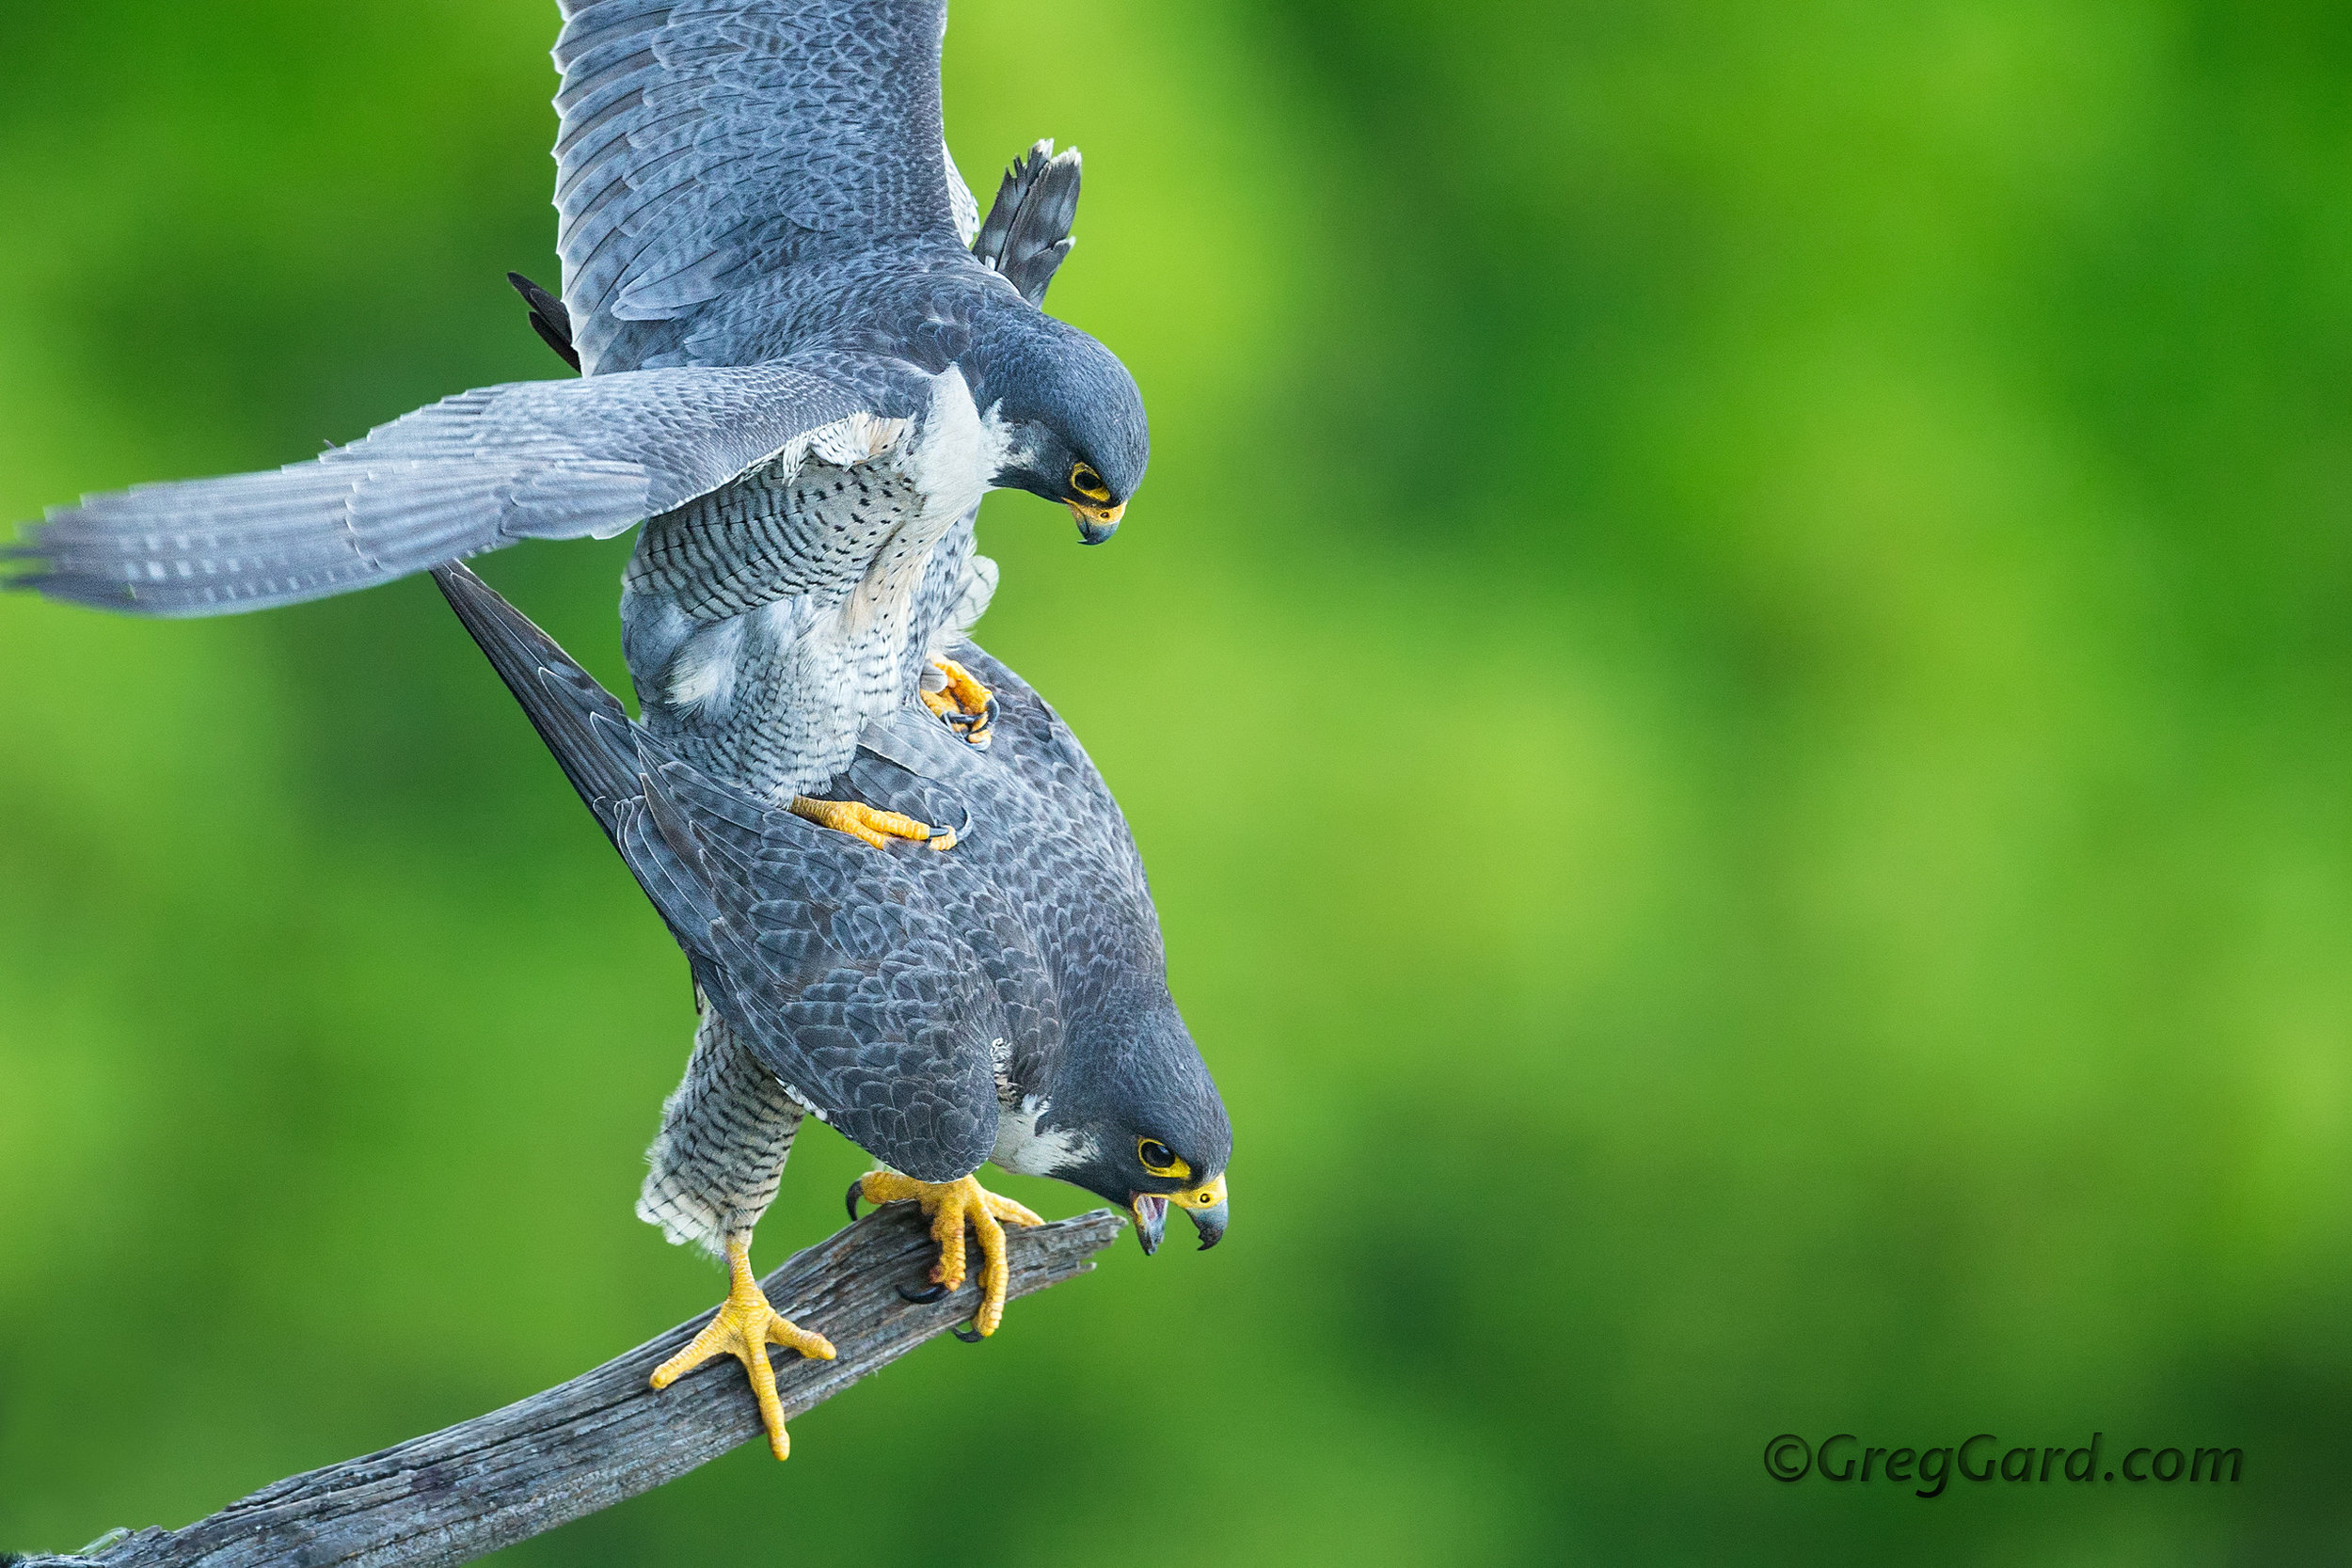 Peregrine Falcon mating